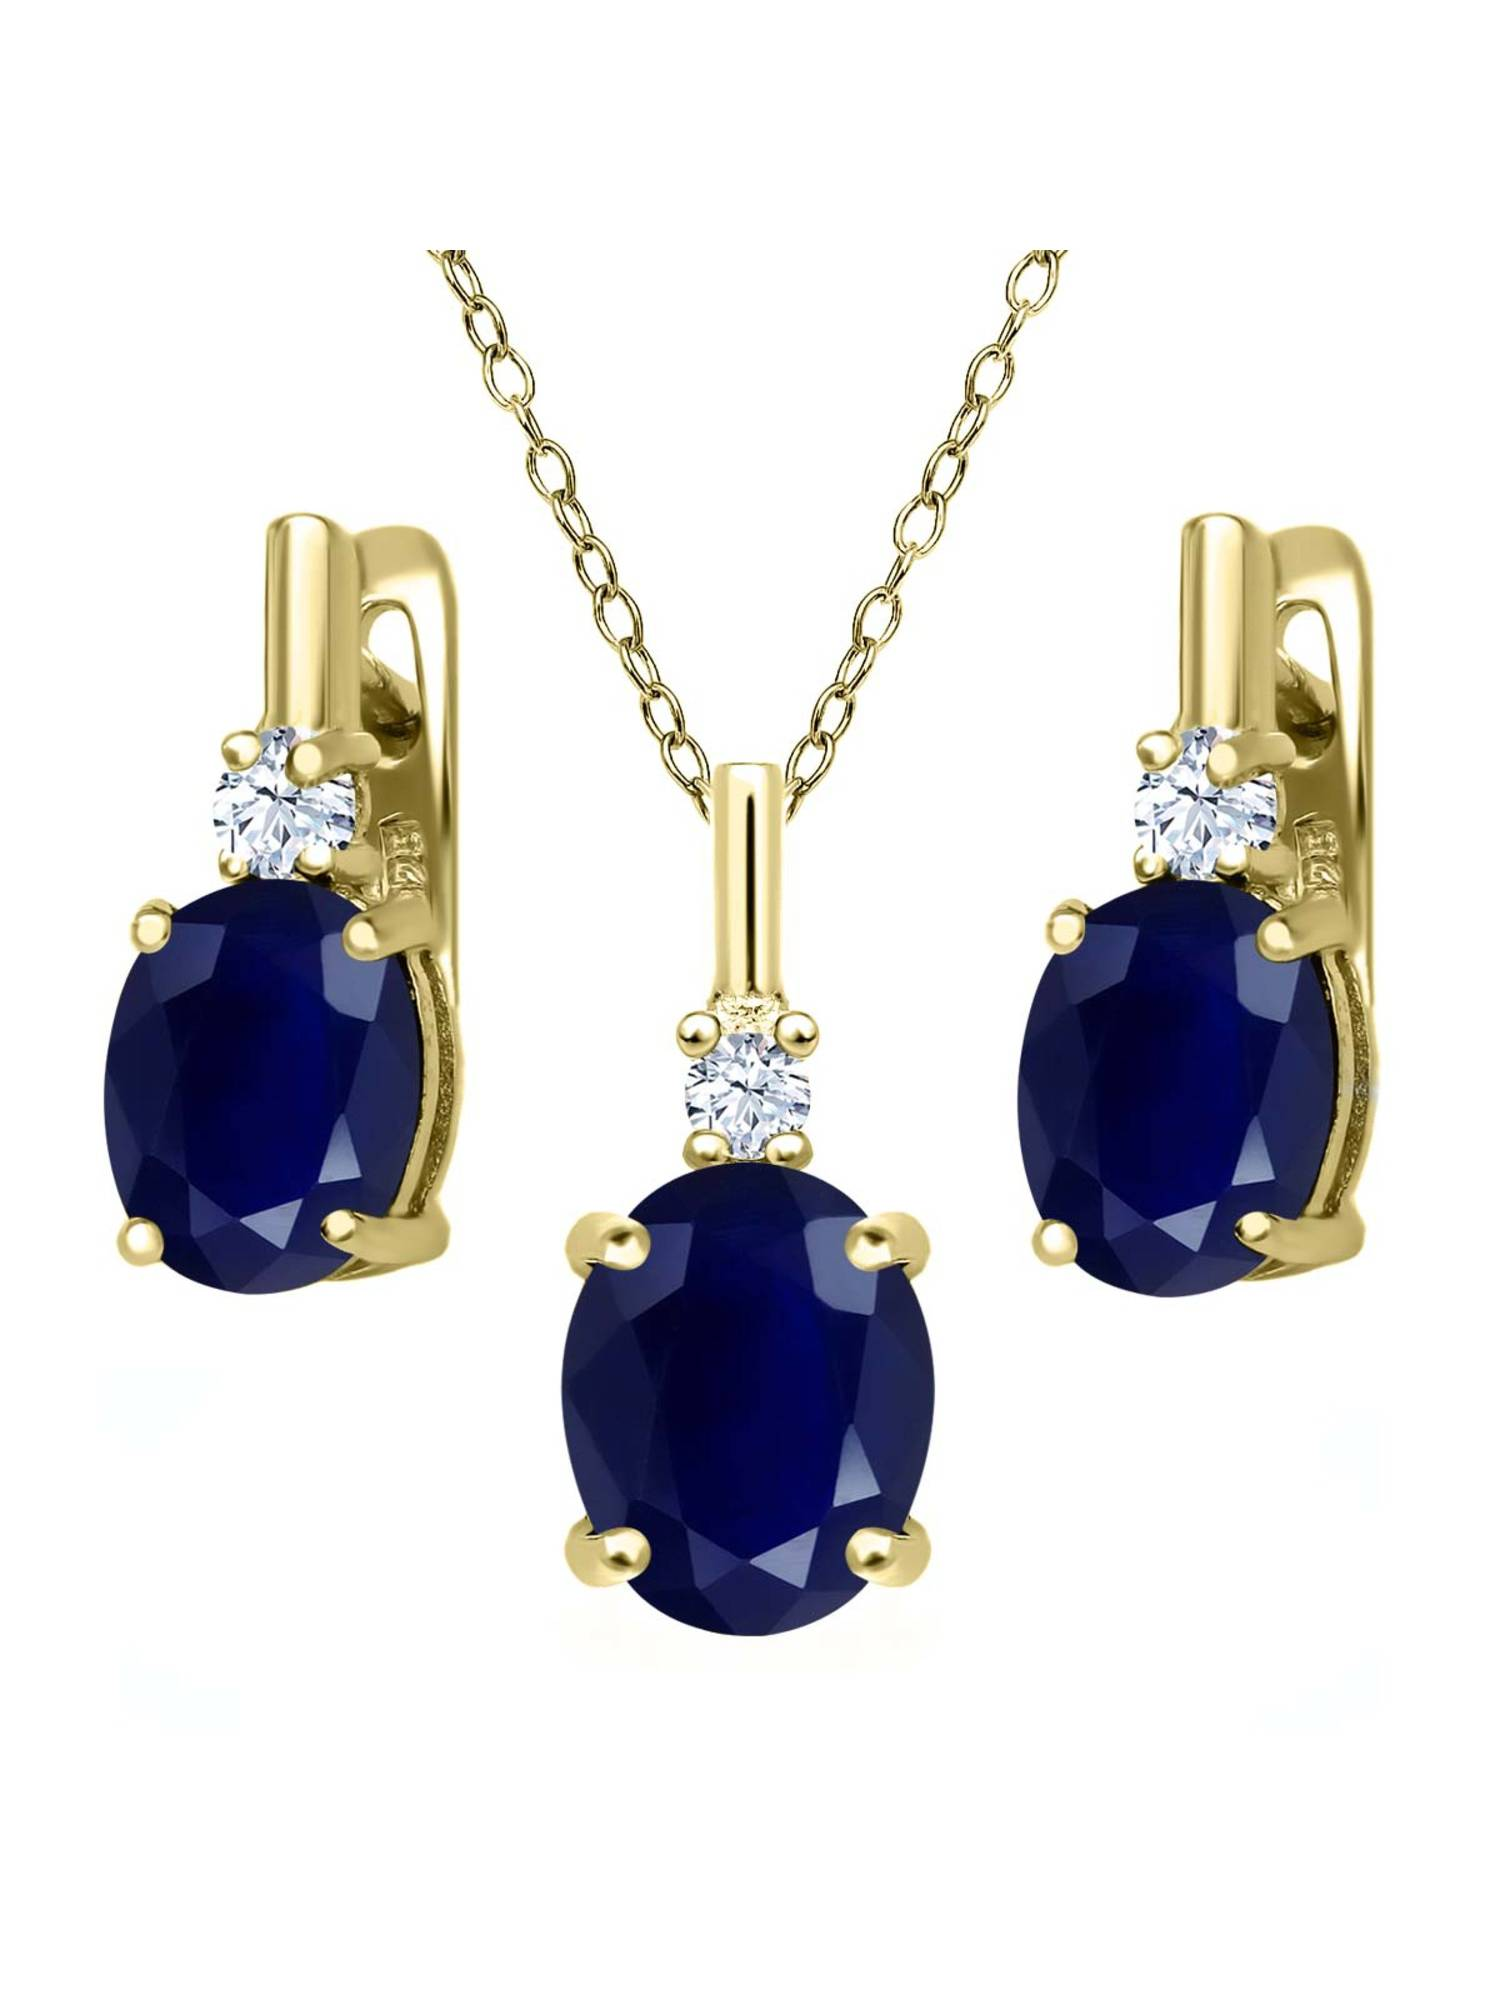 7.58 Ct Blue Sapphire White Topaz 18K Yellow Gold Plated Silver Pendant Earrings Set by